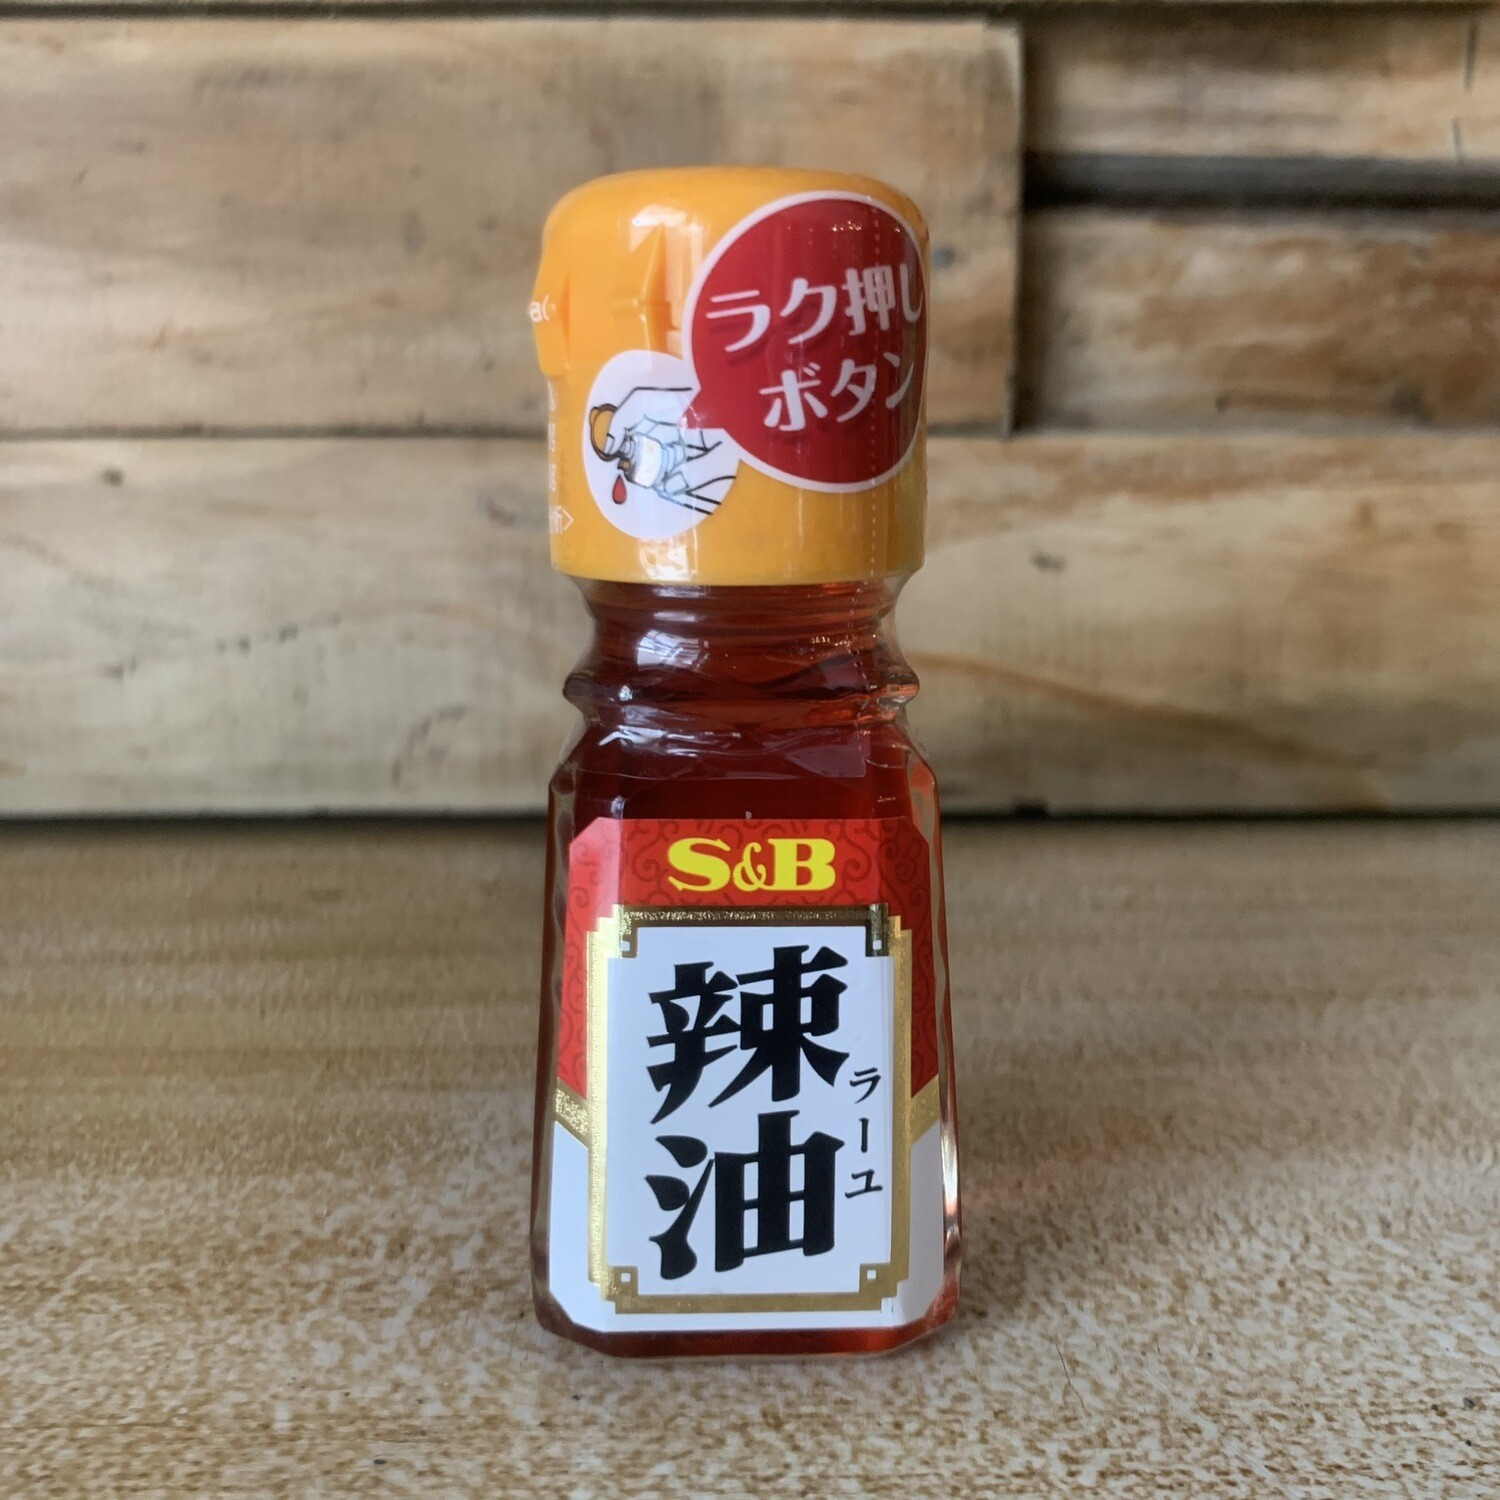 S&B Rayu Chili Oil